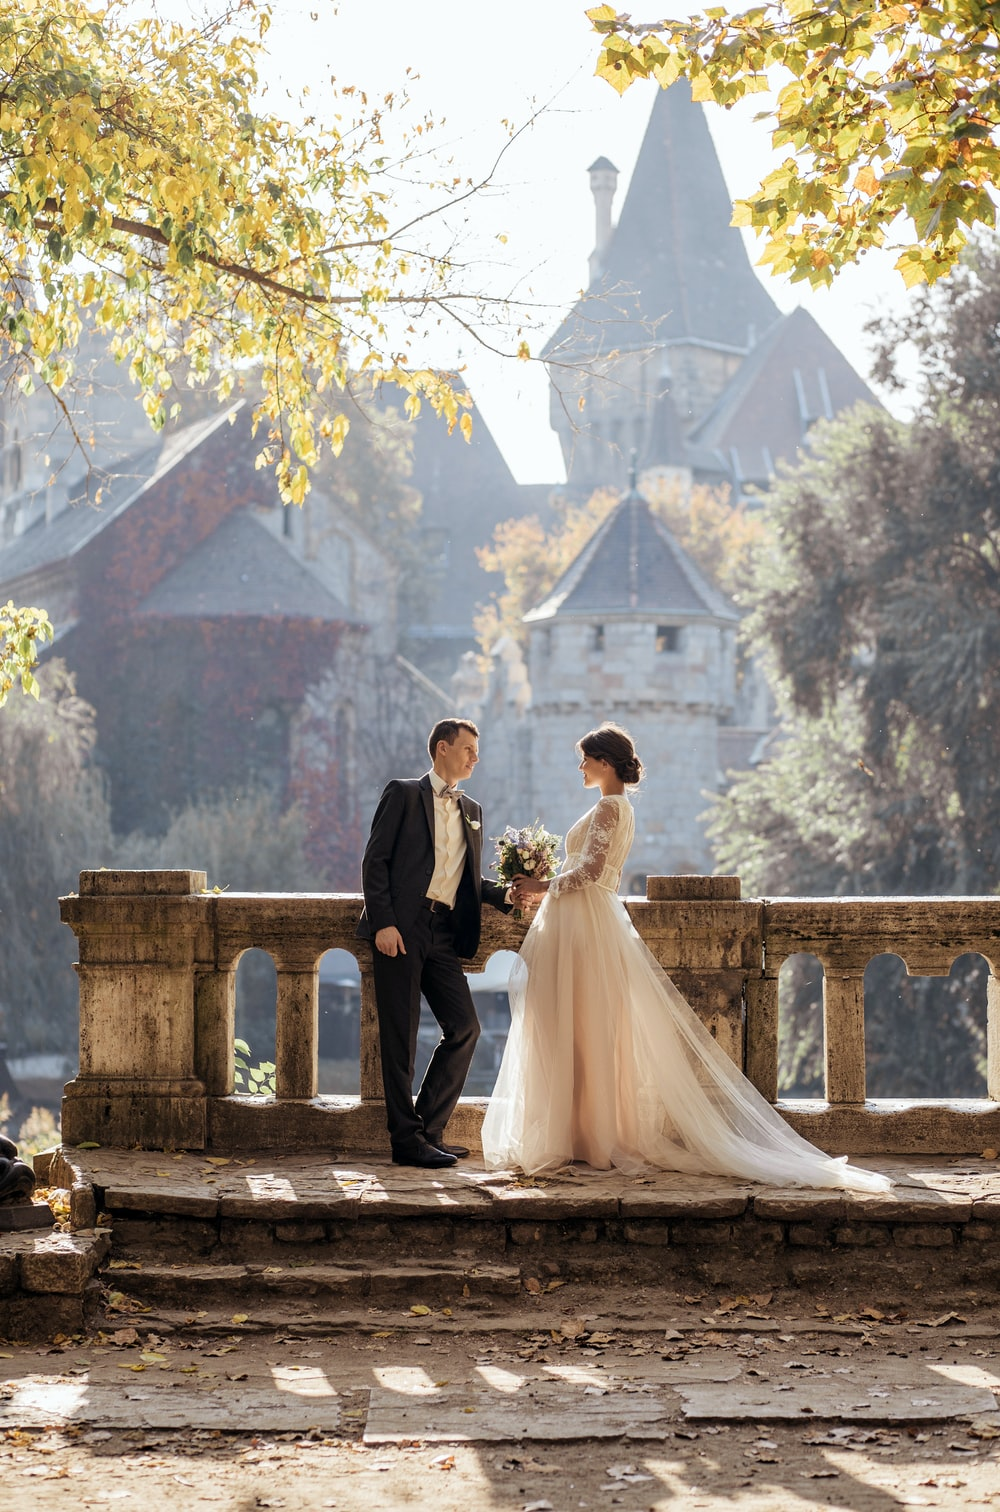 woman in white wedding dress stands in front of man in tuxedo